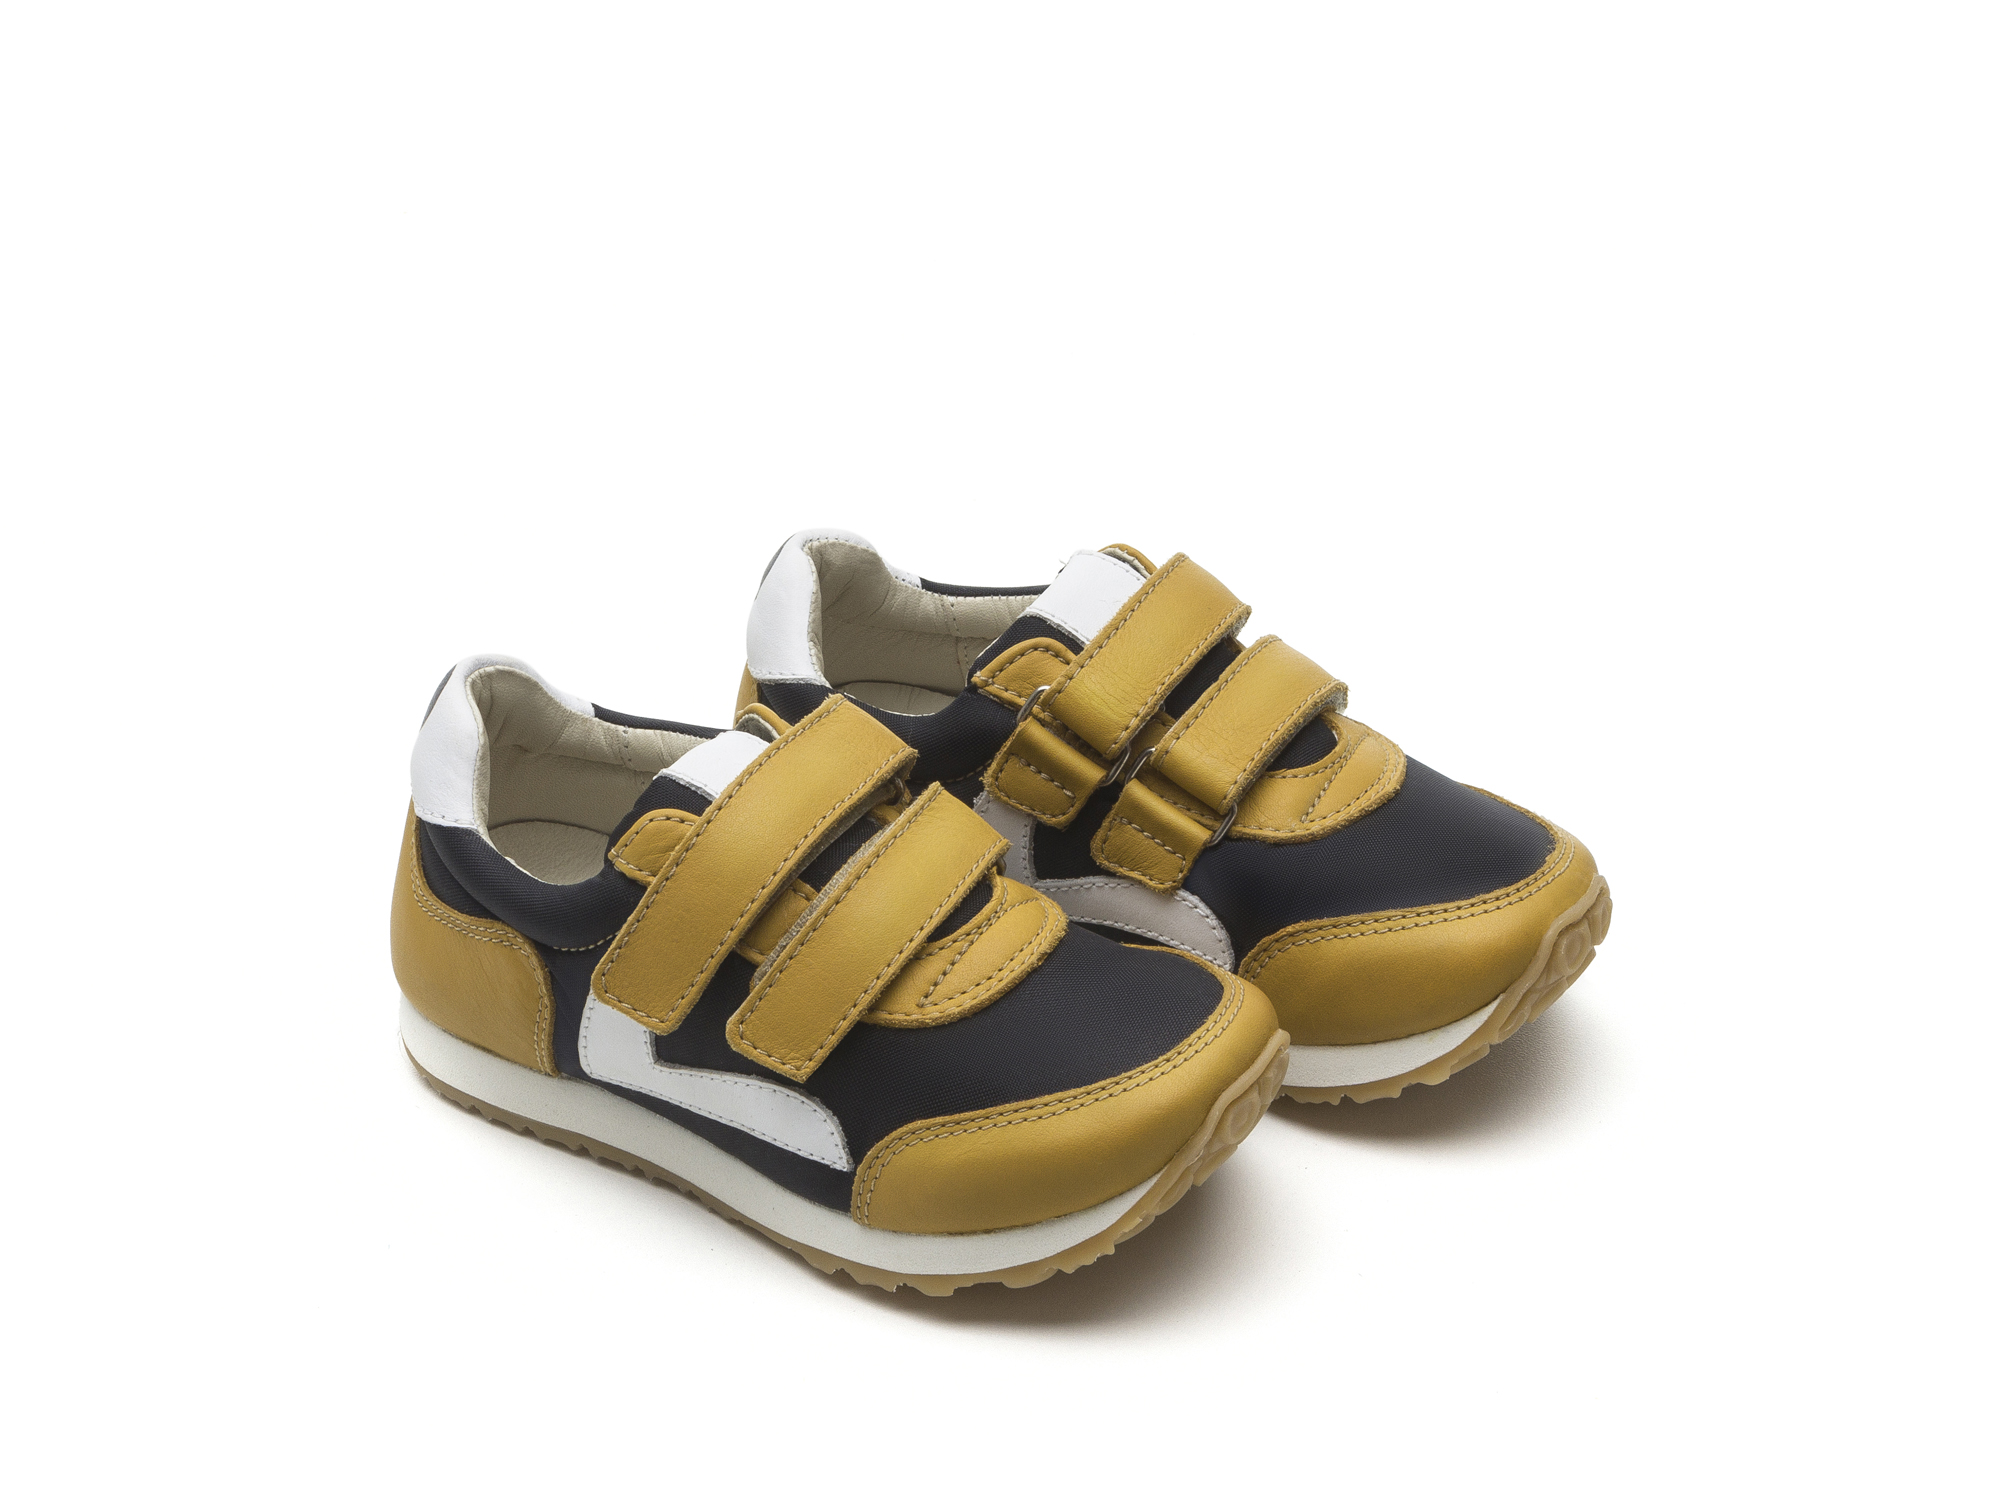 Tênis Little Jump Black Nylon/ Yellow Blur Toddler 2 à 4 anos - 0